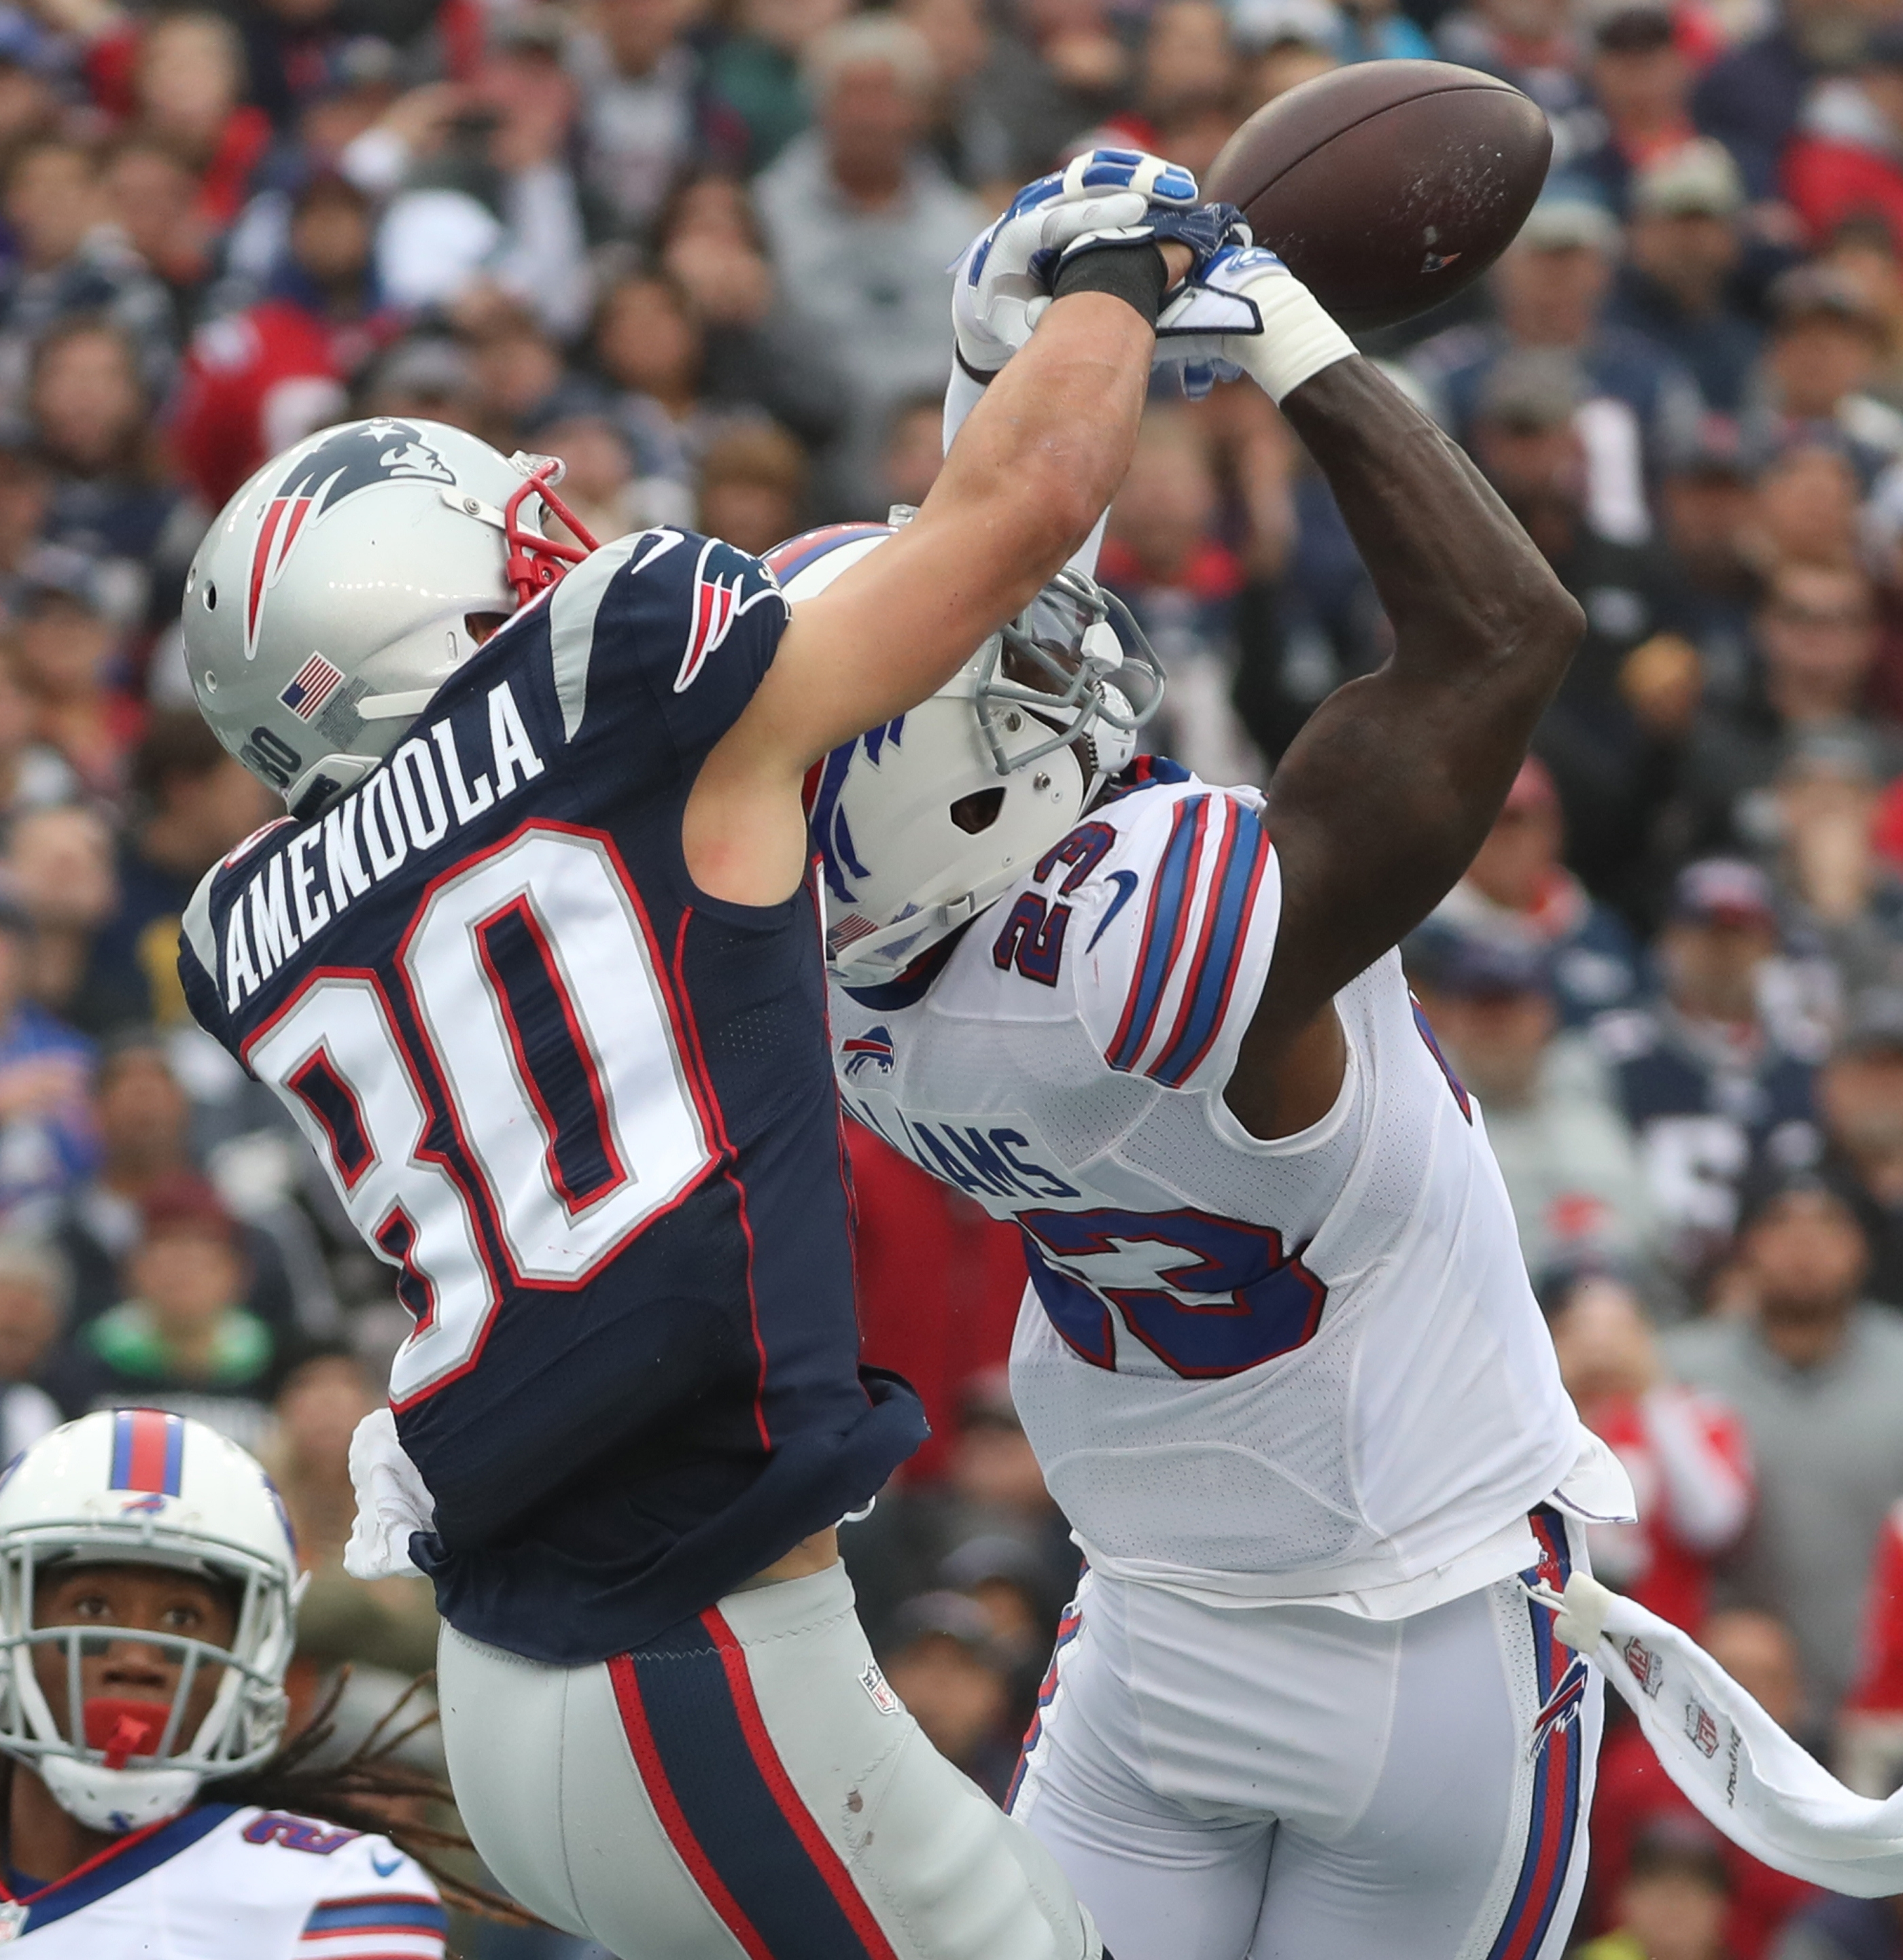 Buffalo Bills strong safety Aaron Williams (23) breaks up a pass intended for New England Patriots wide receiver Danny Amendola (80) in the end zone in the third quarter.